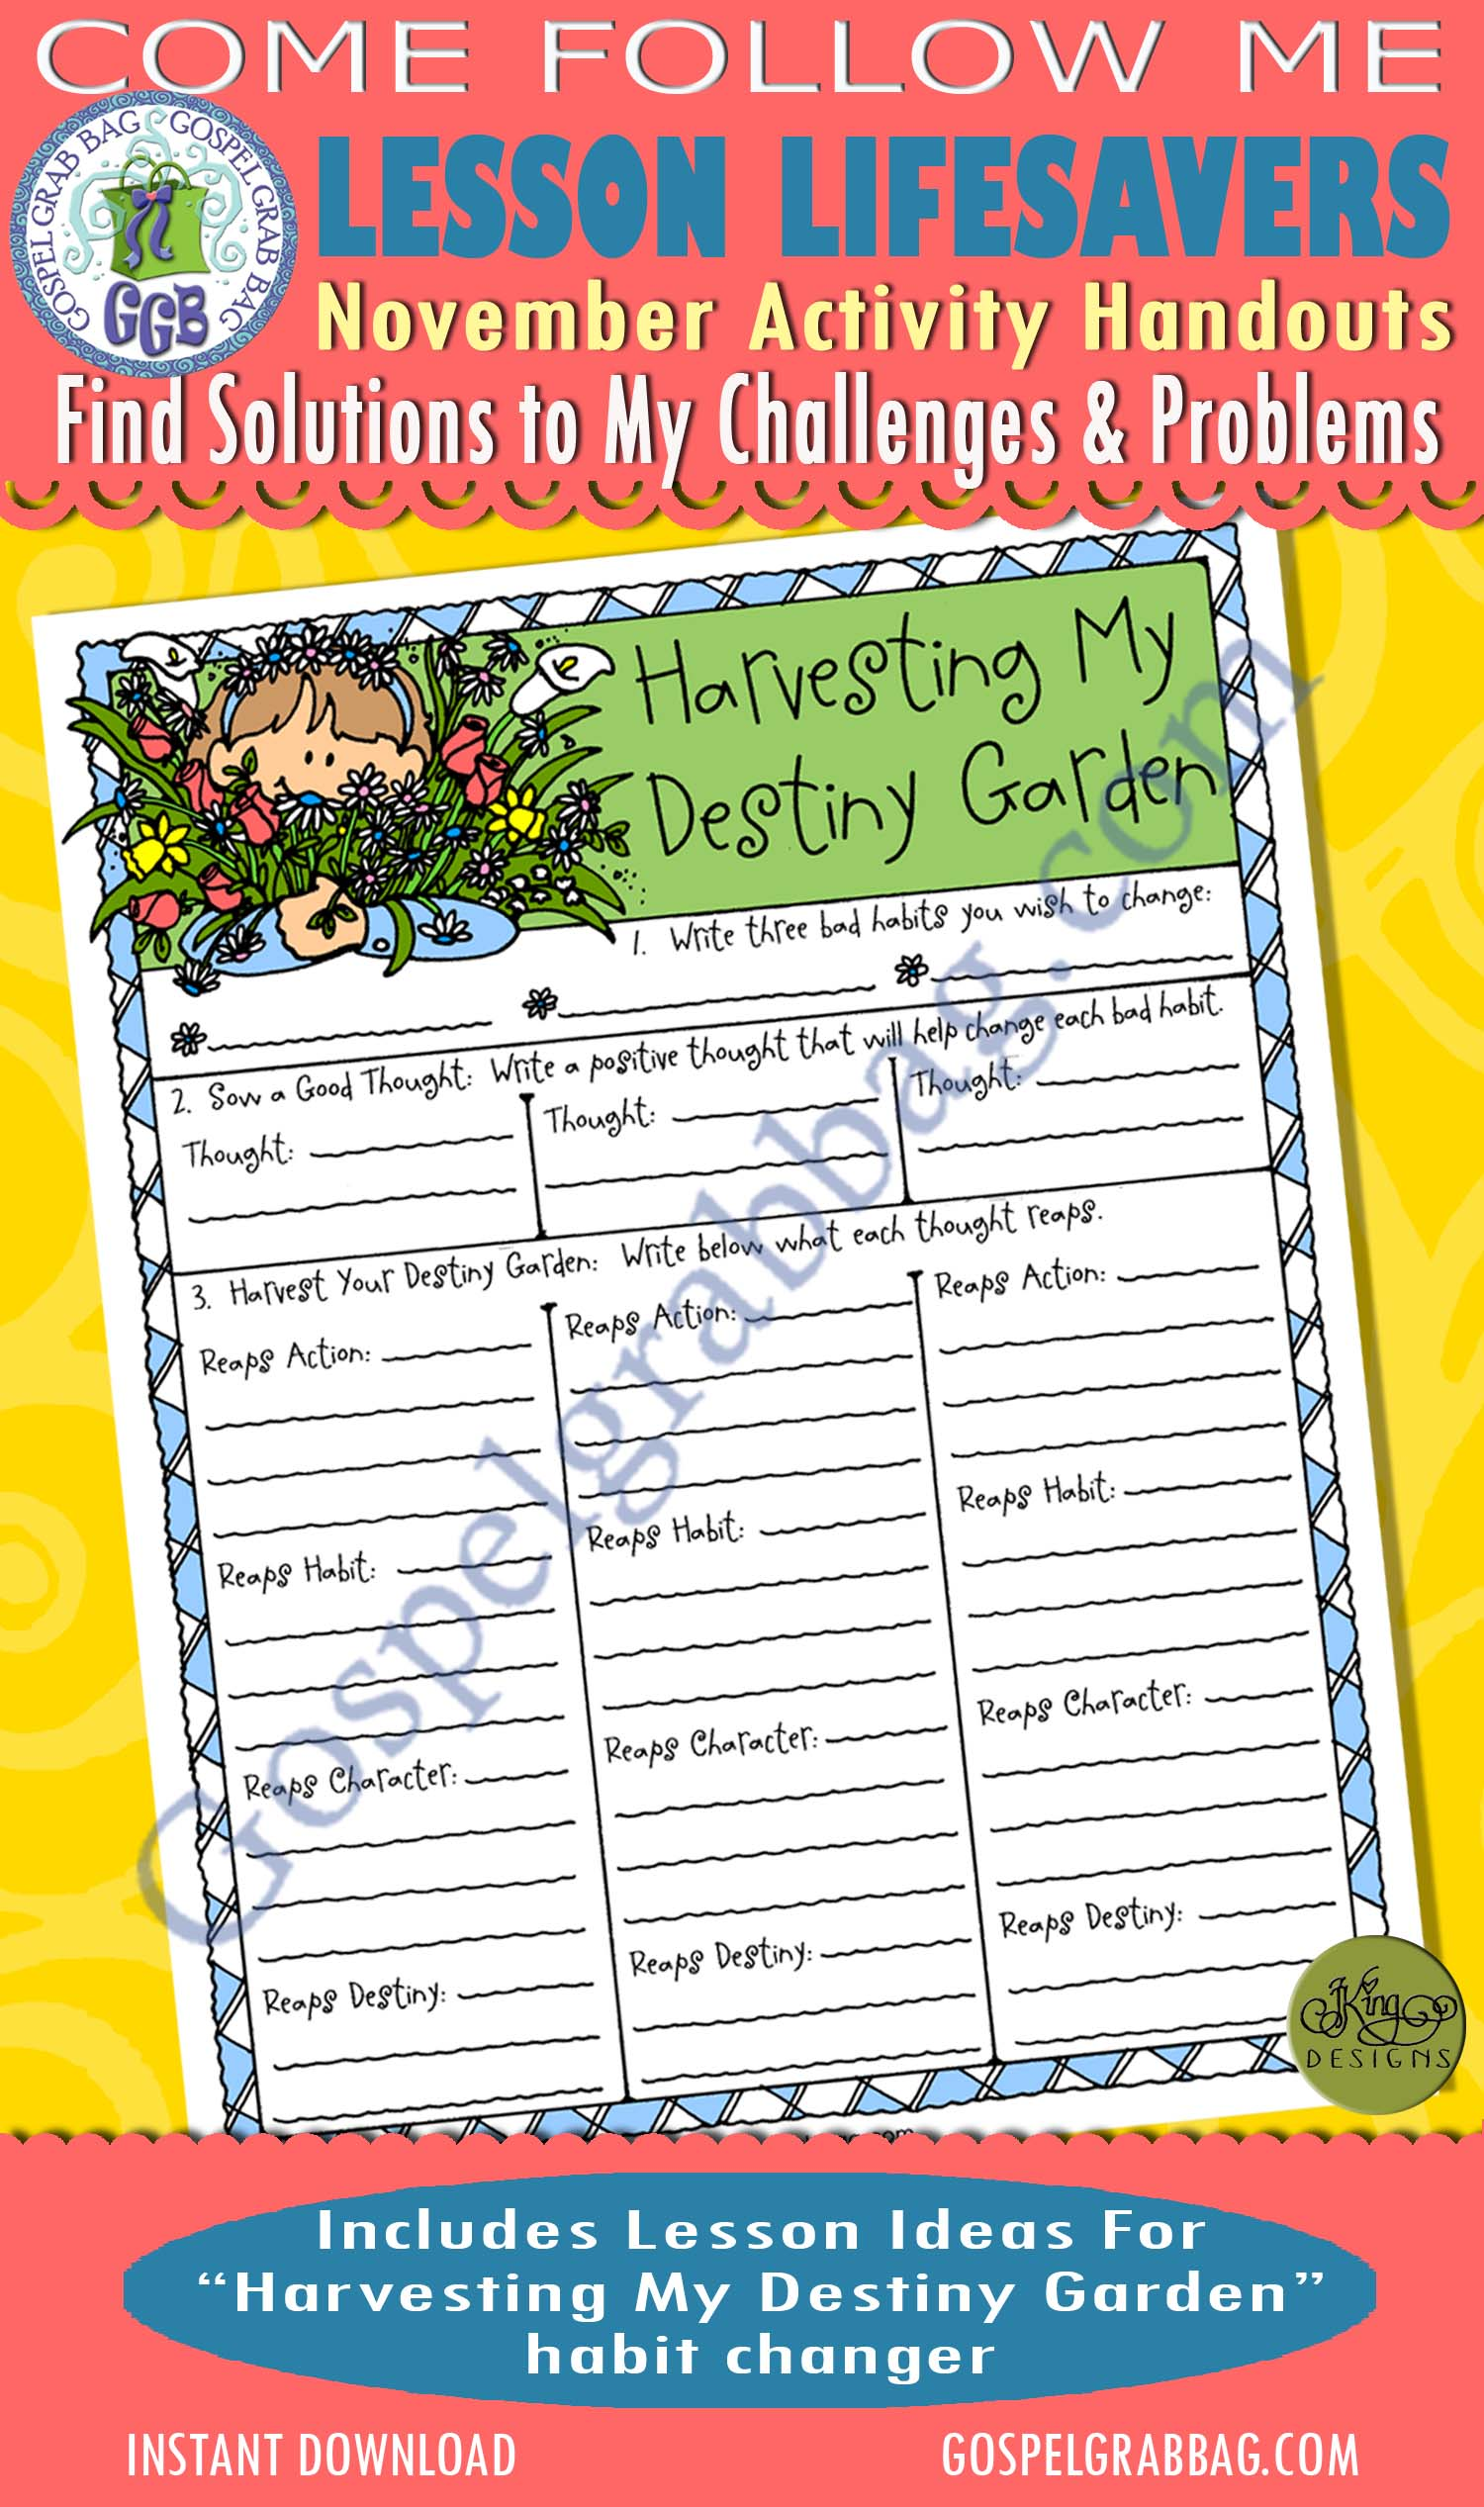 "$1.75 November Lesson 7 - Come Follow Me ""How can I find solutions to my challenges and problems?"" ACTIVITY: Harvesting My Destiny Garden habit changer"